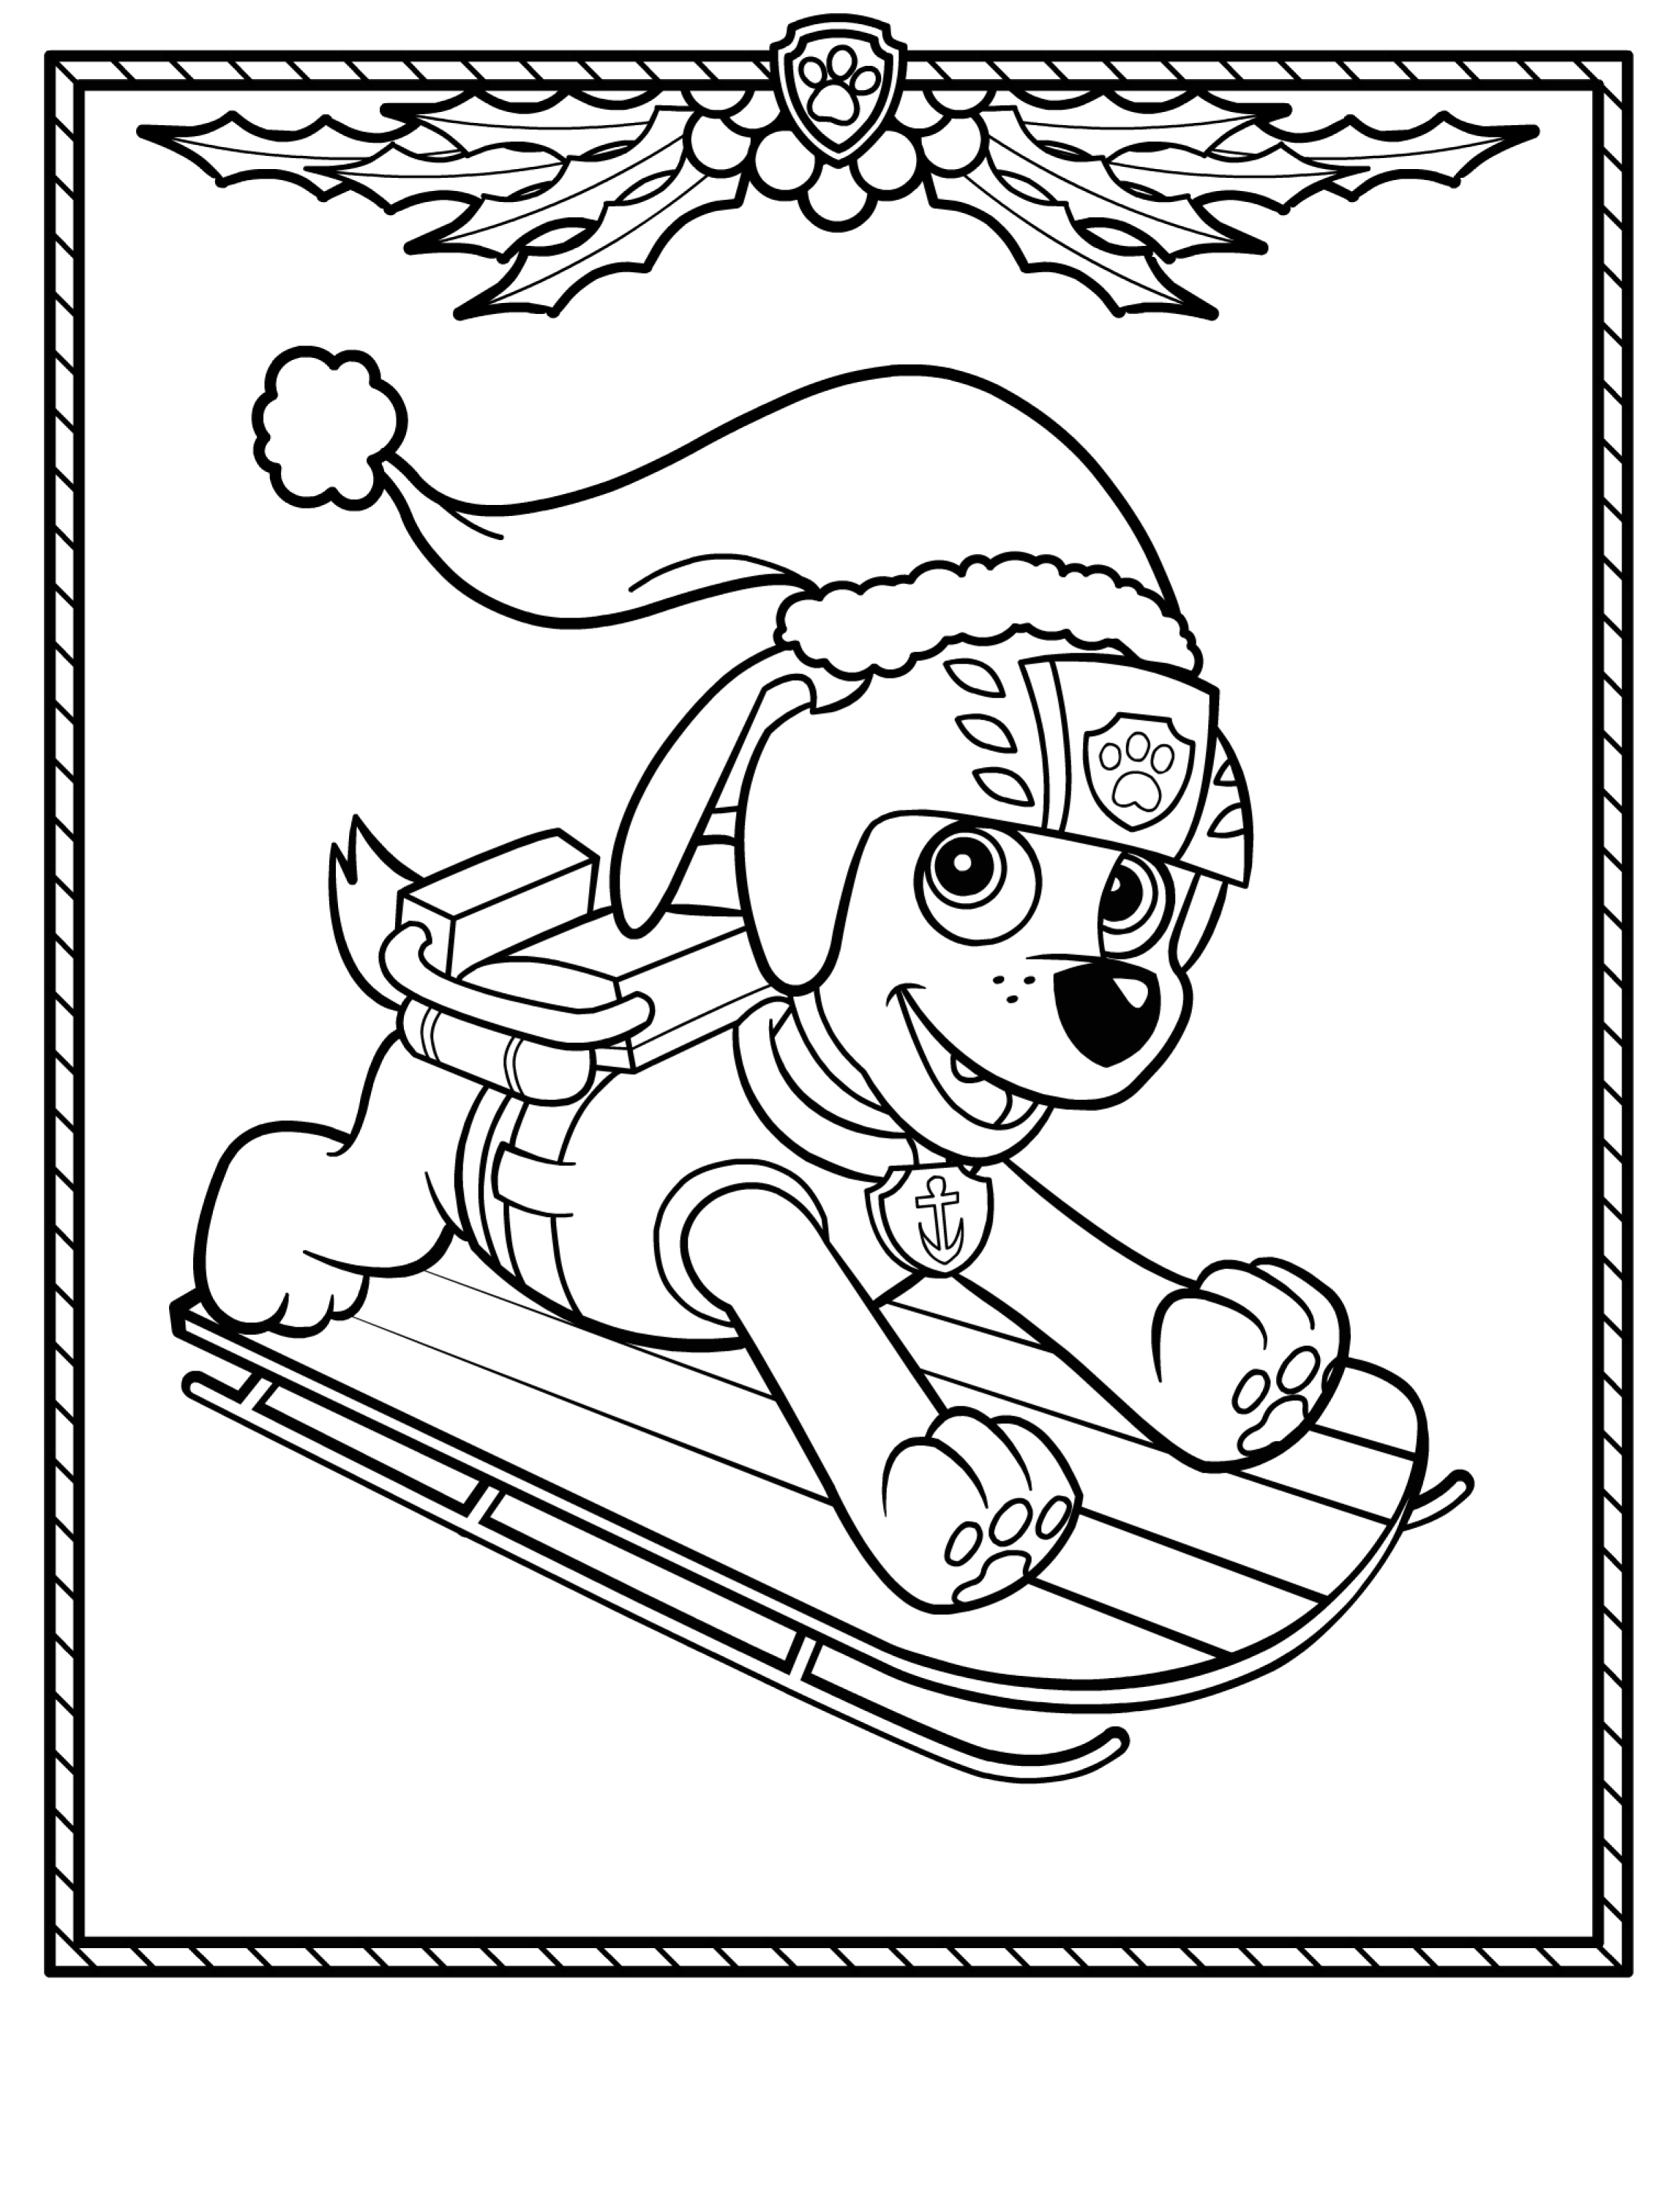 paw patrol boat coloring page free paw patrol coloring pages download free clip art boat page patrol paw coloring